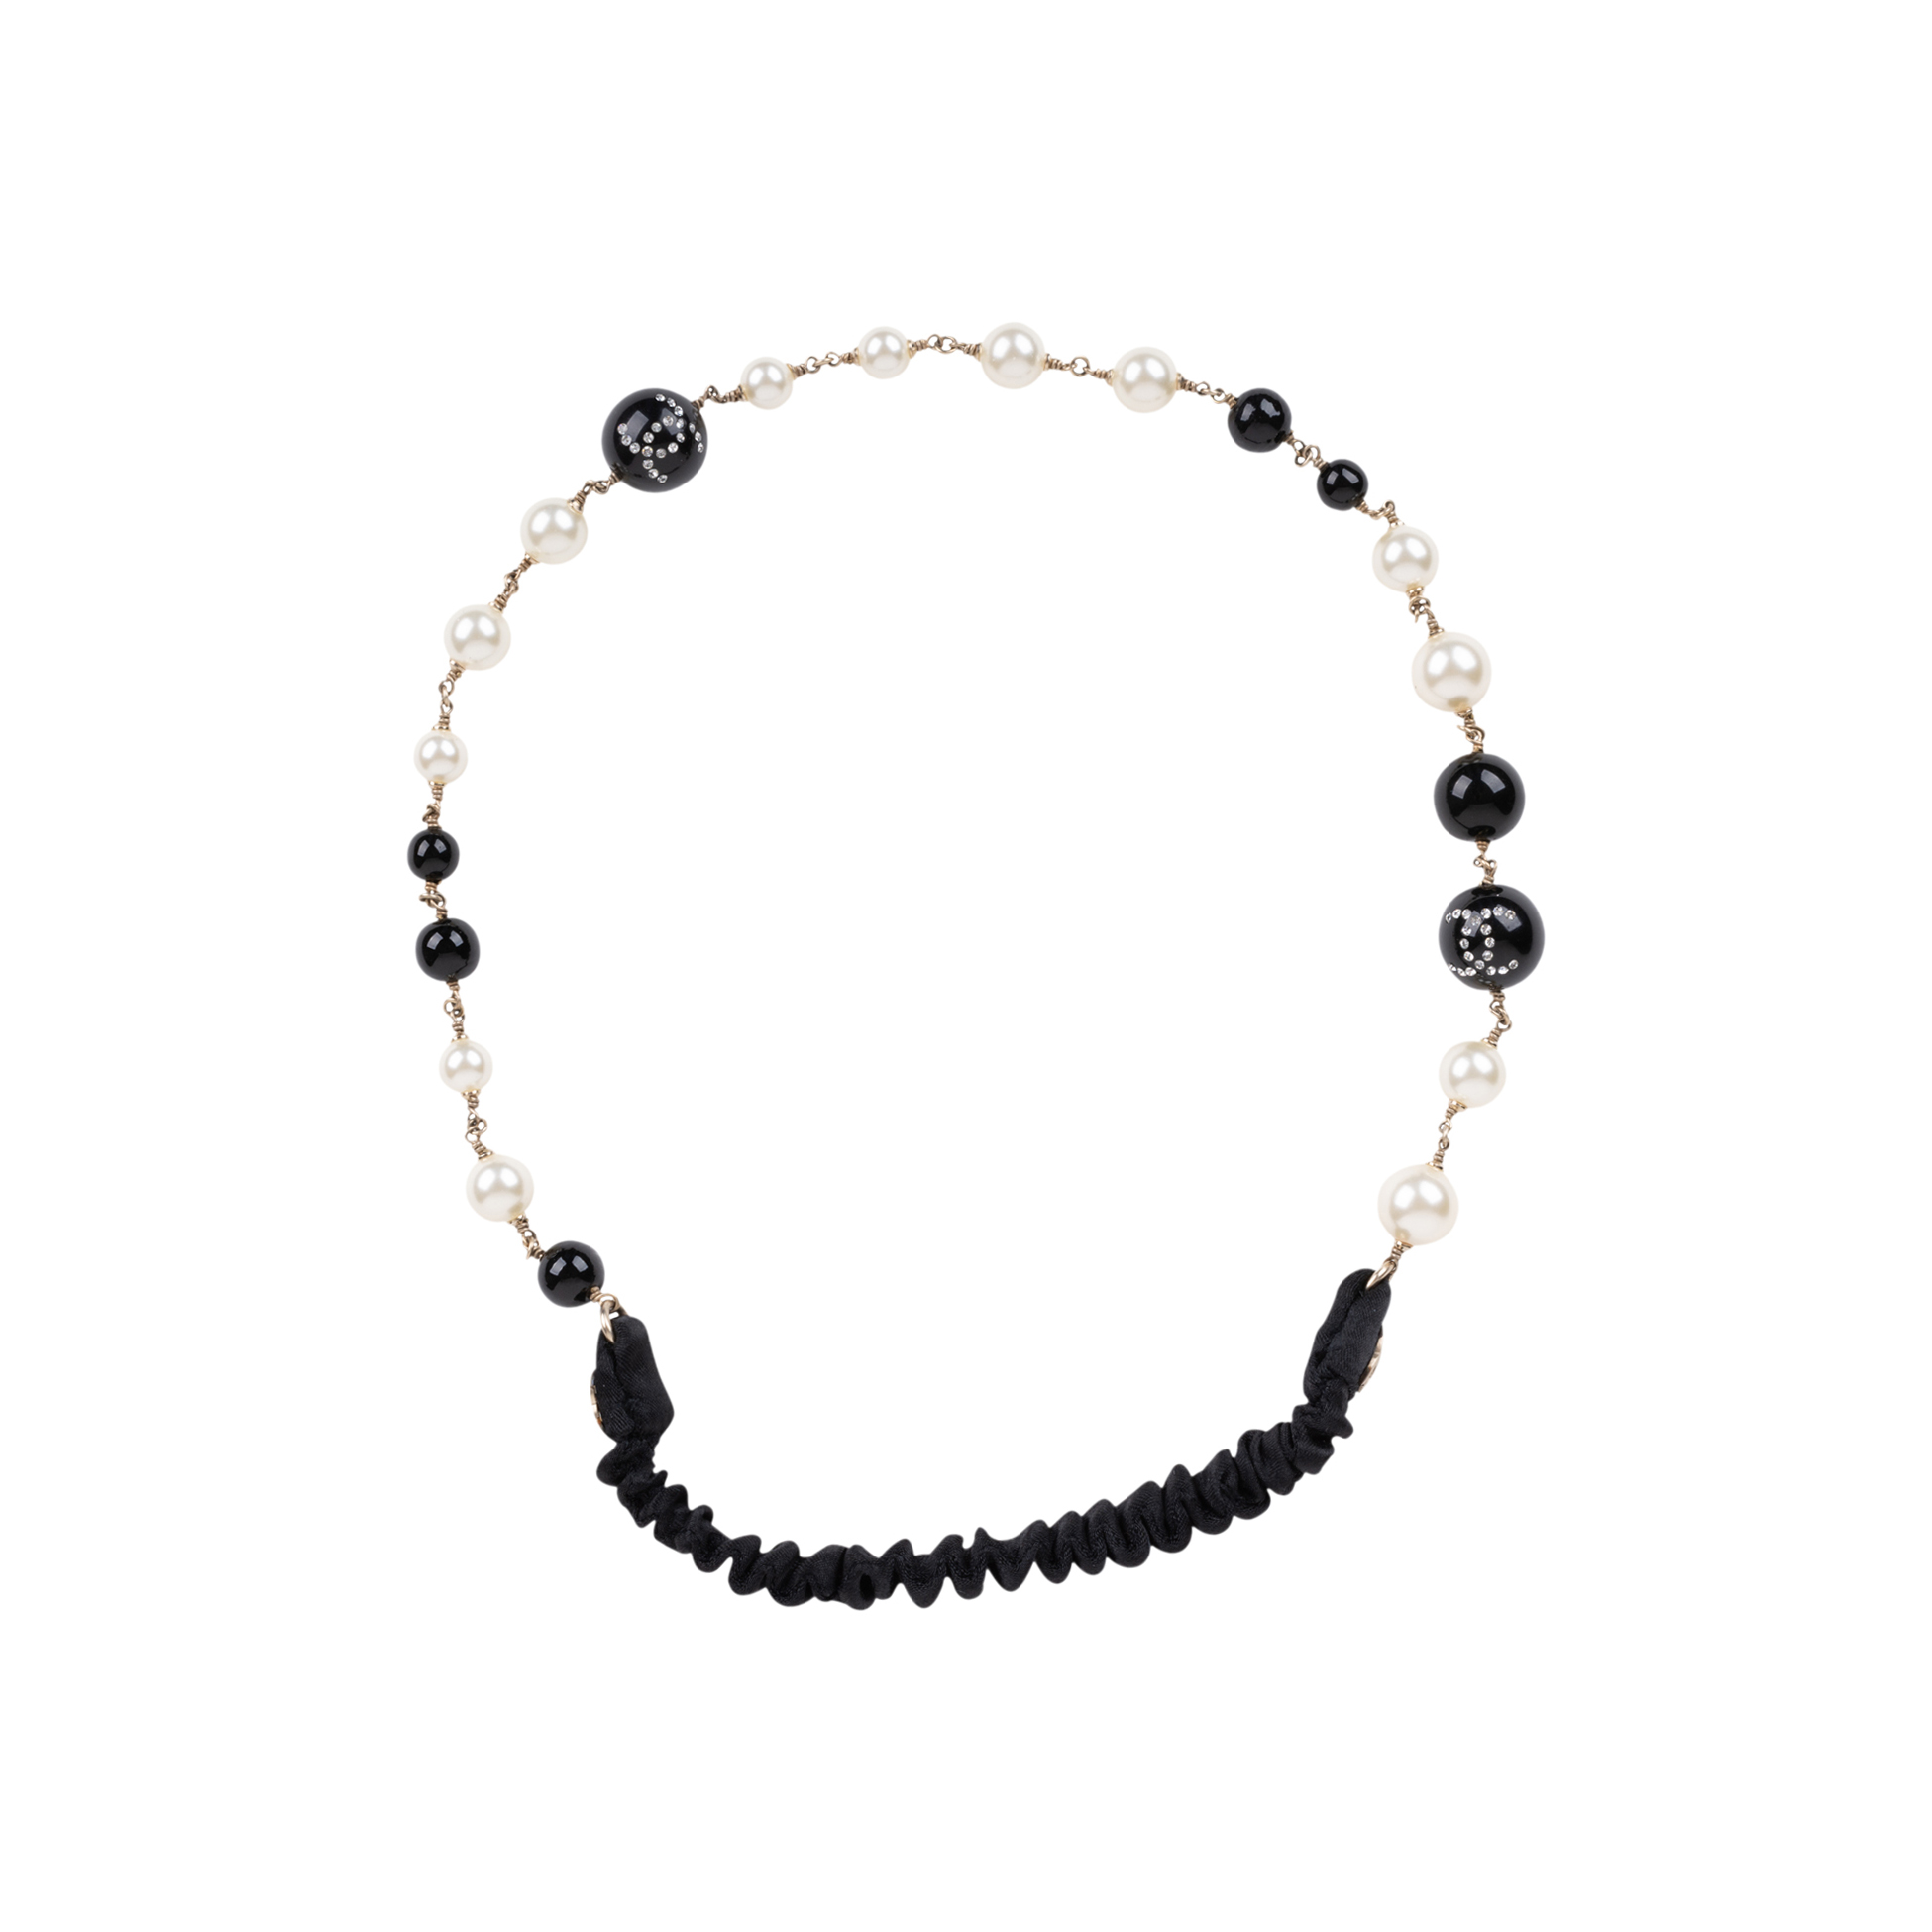 Authentic Pre Owned Chanel Faux Pearl and Beads Headband (PSS-600-00009)  1e39559be8d